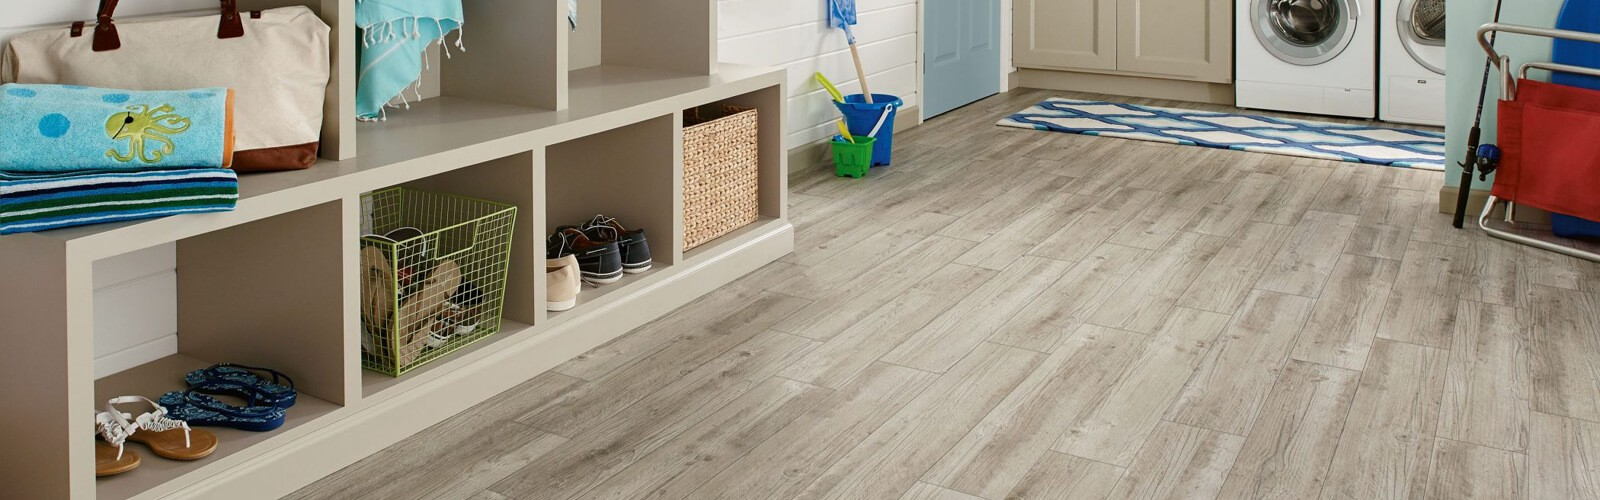 Century Barnwood Luxury Vinyl Tile | Direct Carpet Unlimited